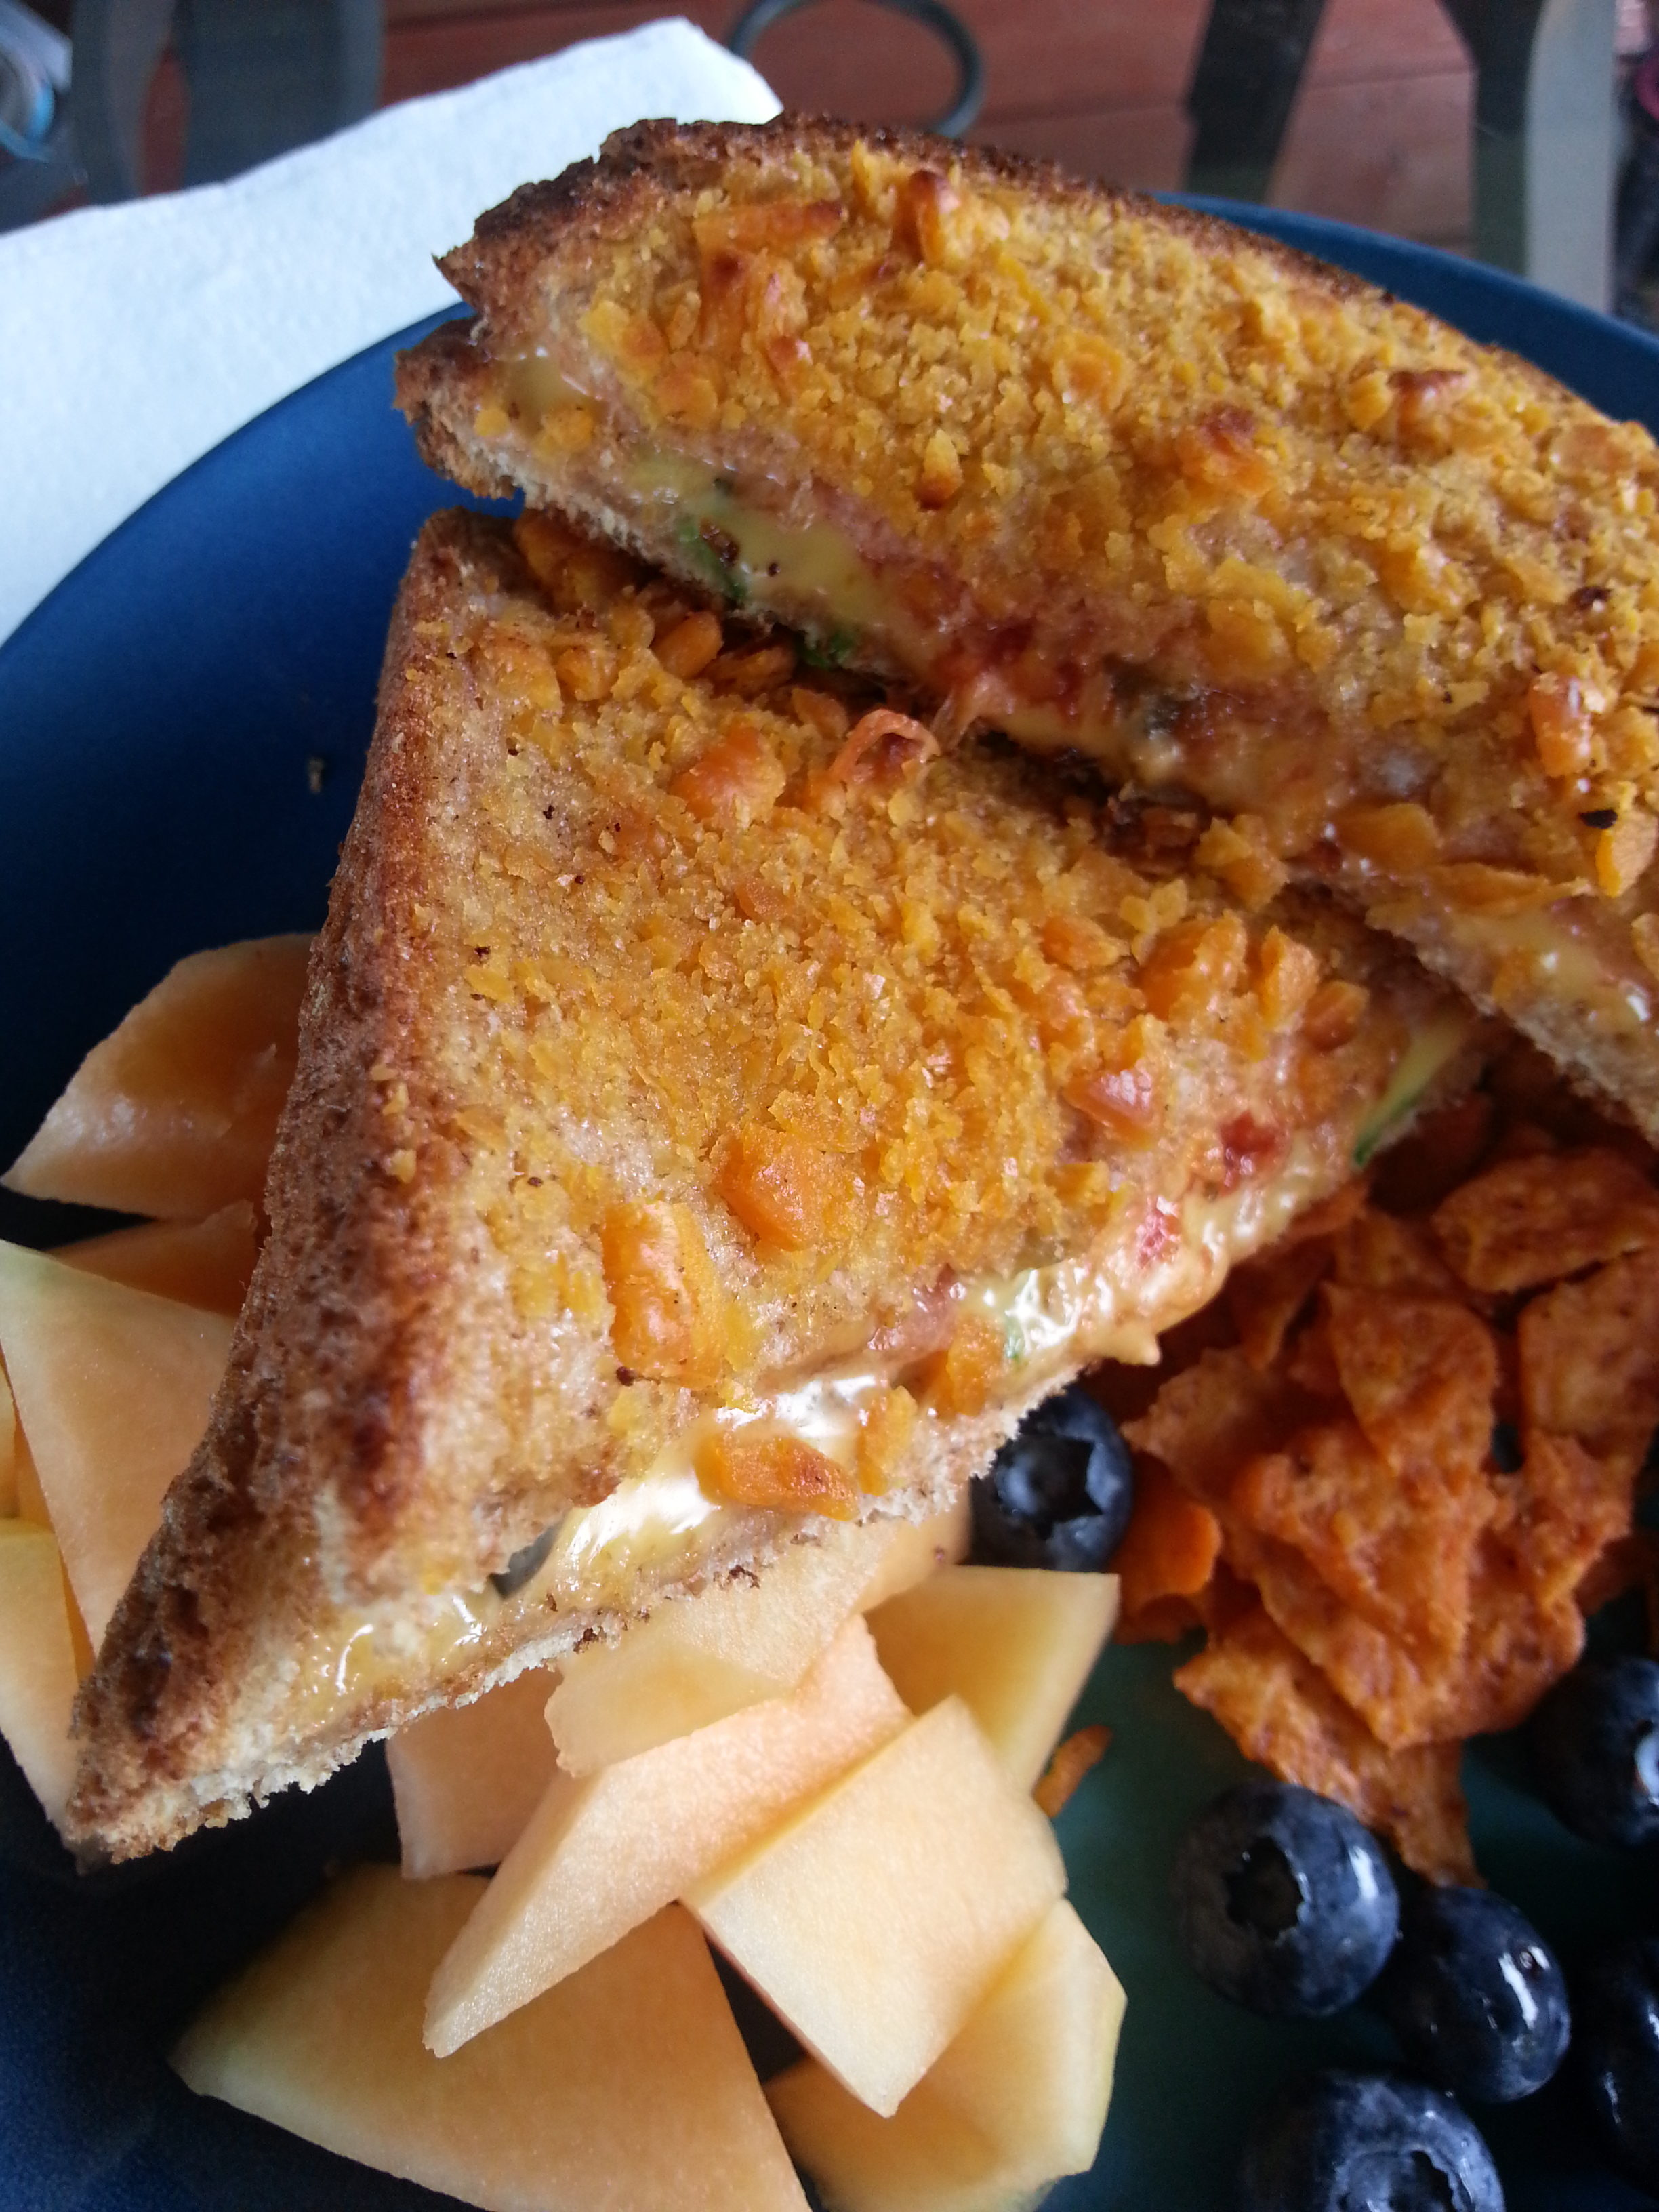 Jalapeno grilled cheese coated in Cheeze it crumbles